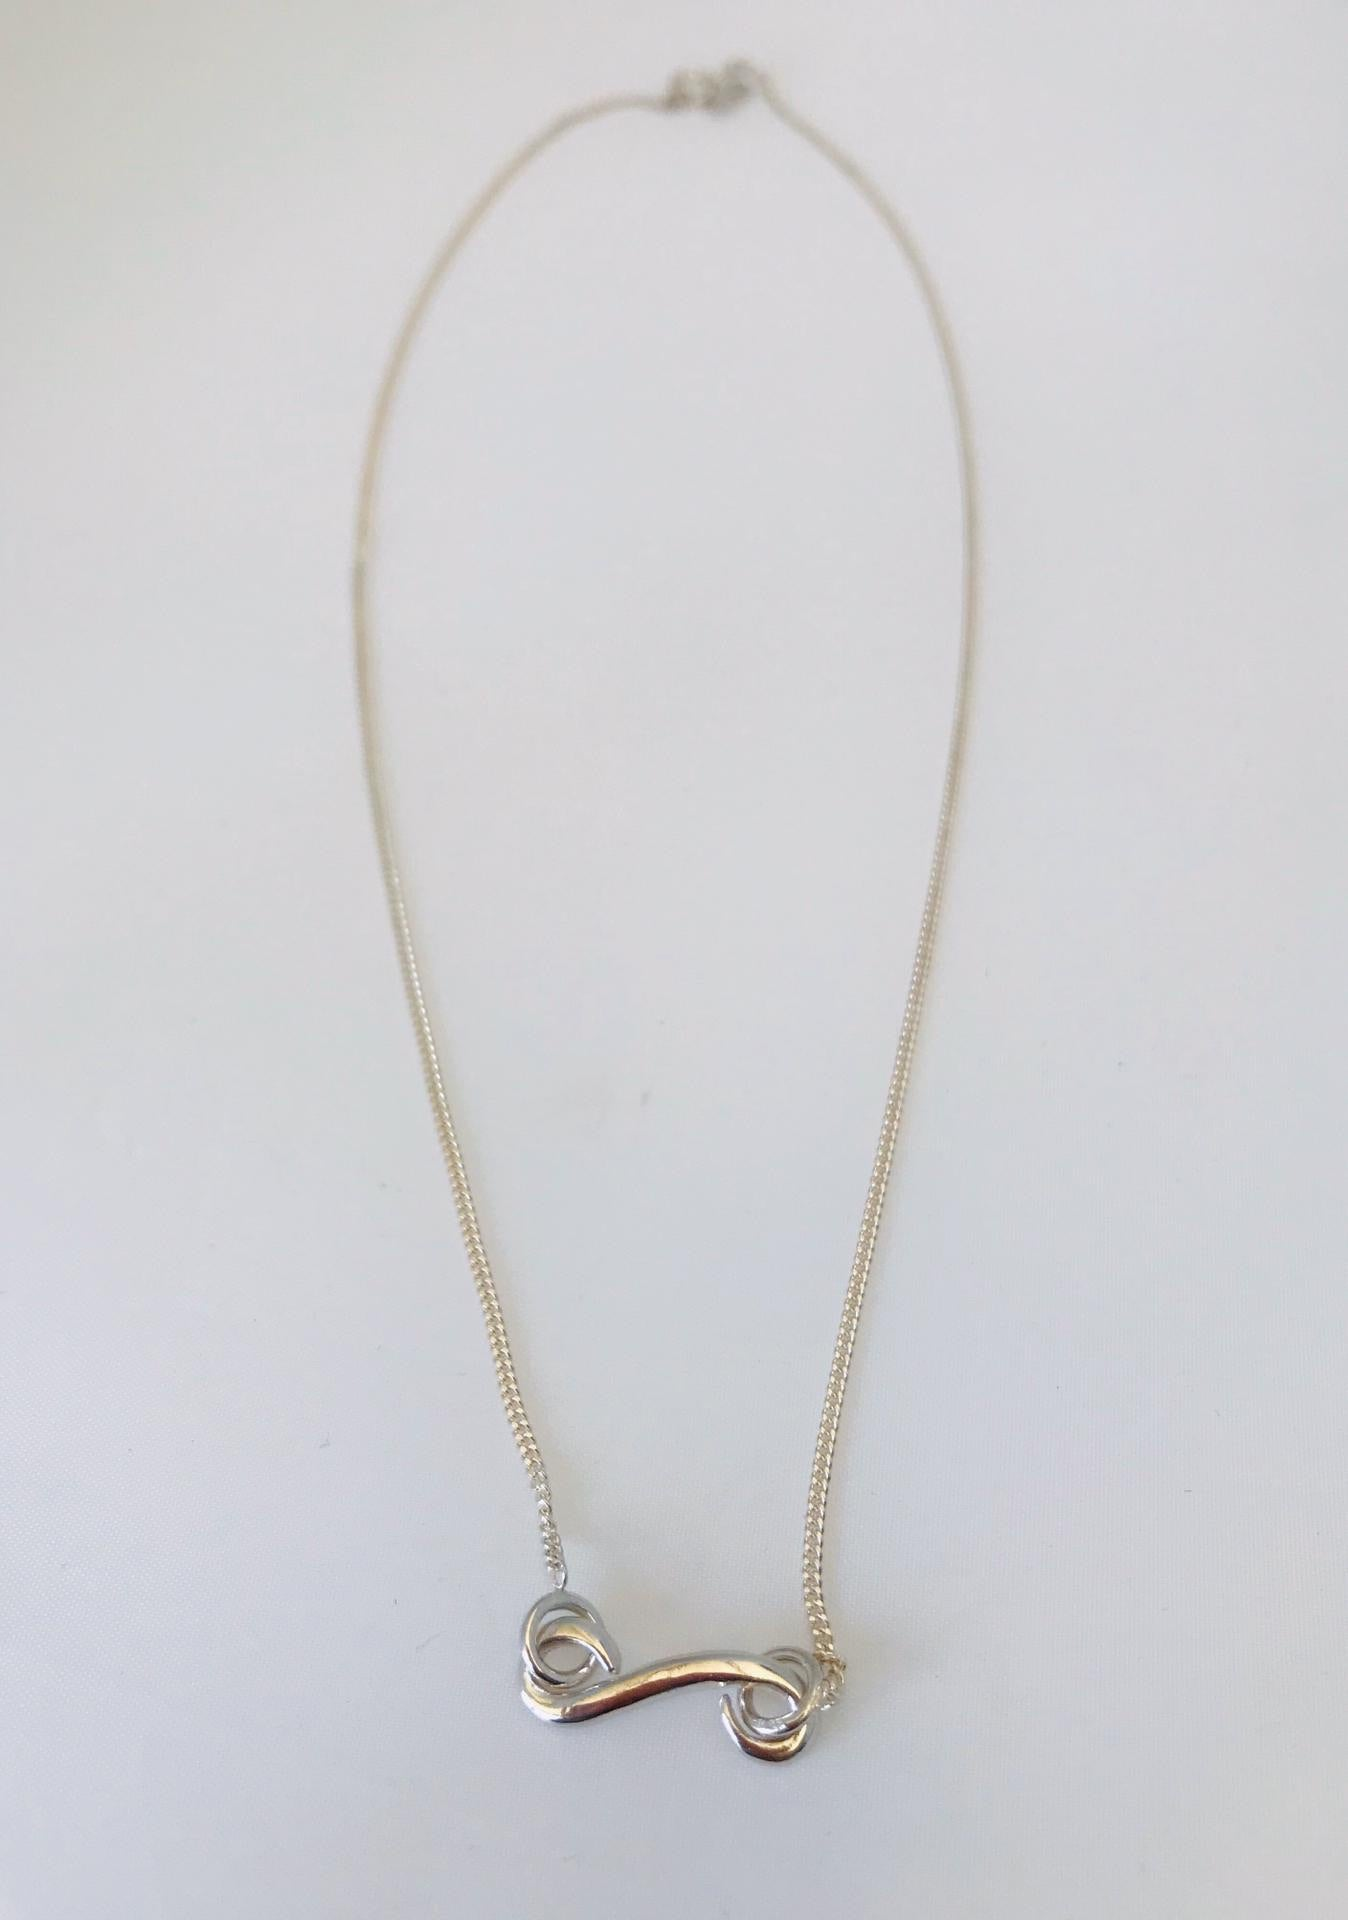 Wouters & Hendrix - silver necklace